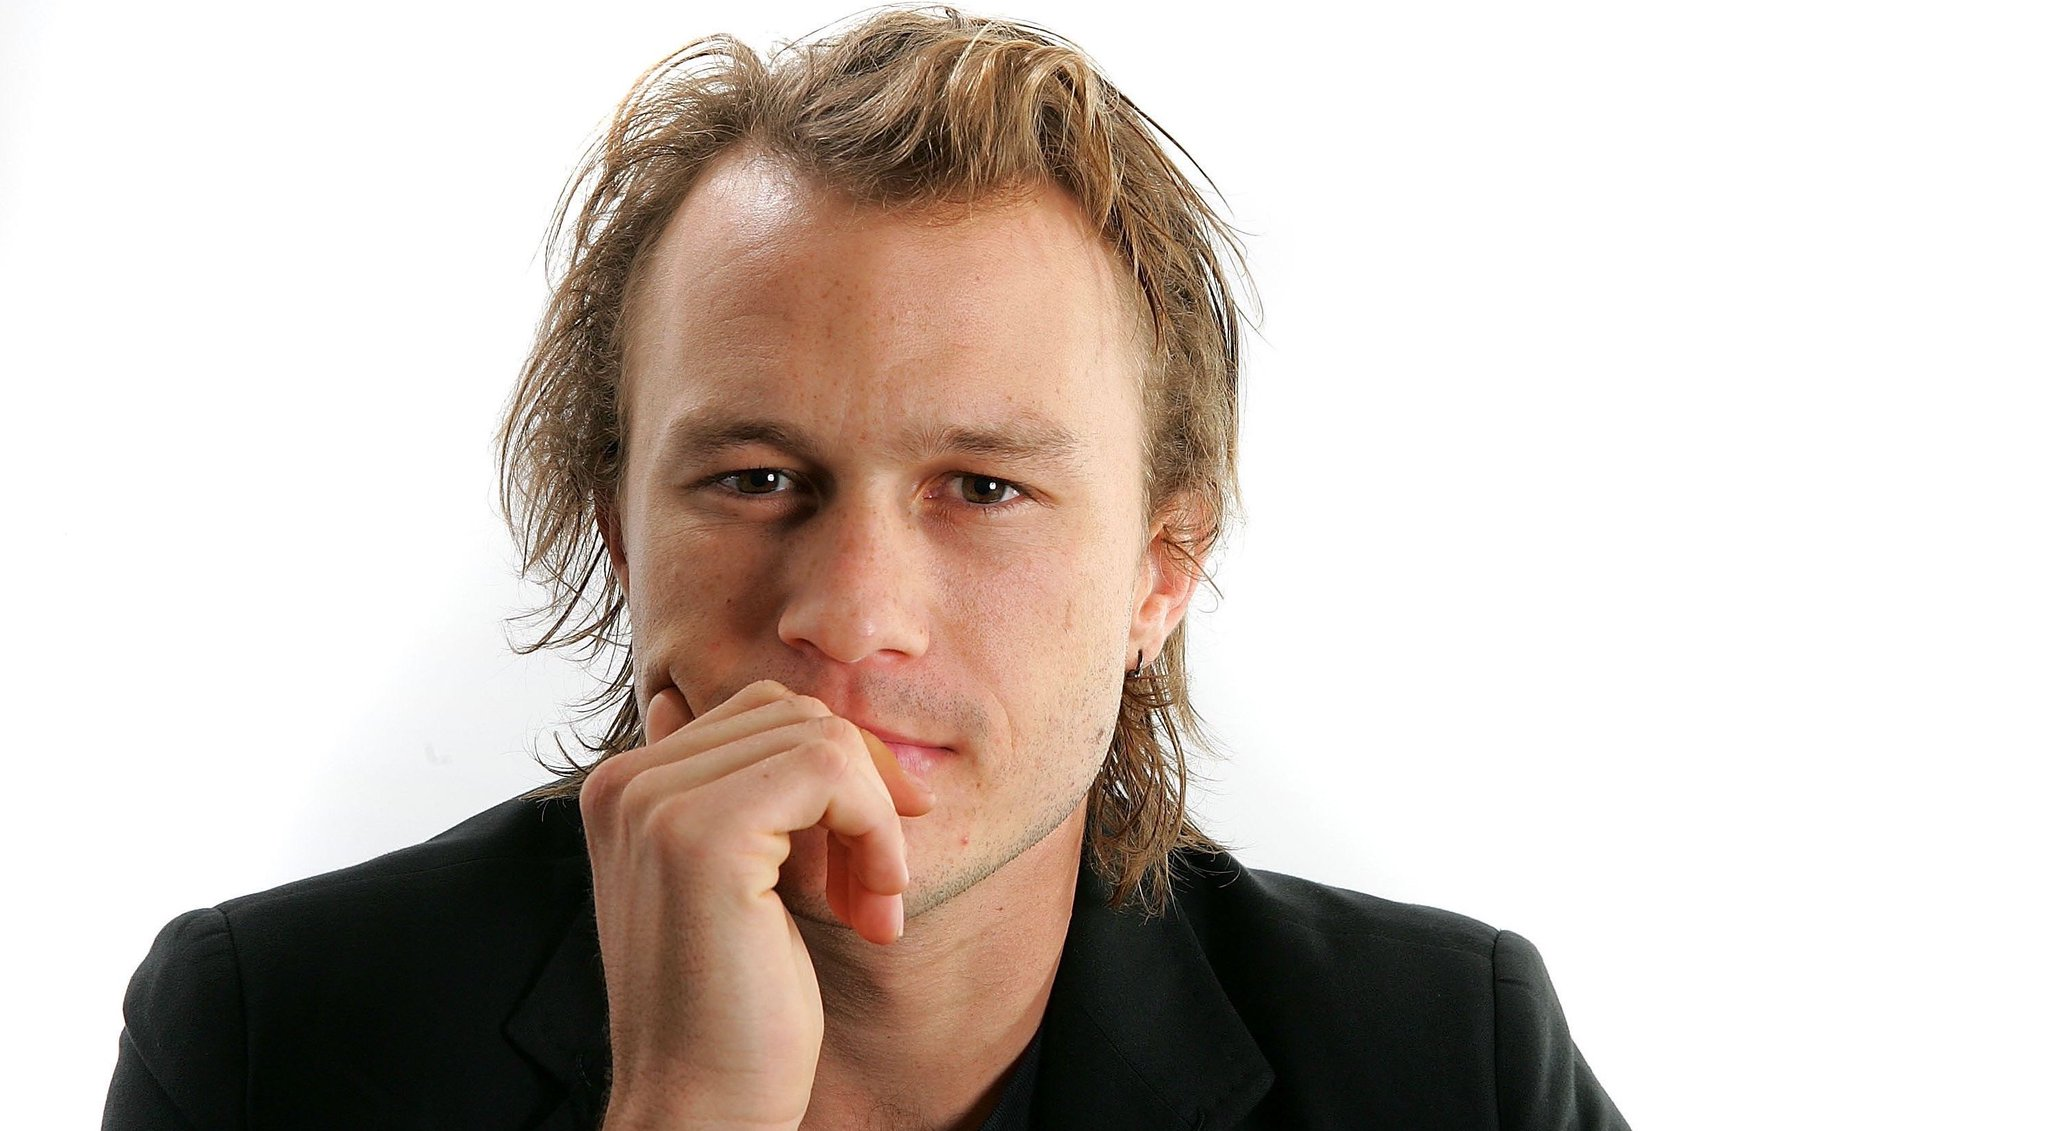 Look back at our 2006 cover story on Heath Ledger https://t.co/fnMsQbRfvg https://t.co/hp5pfBKgbW